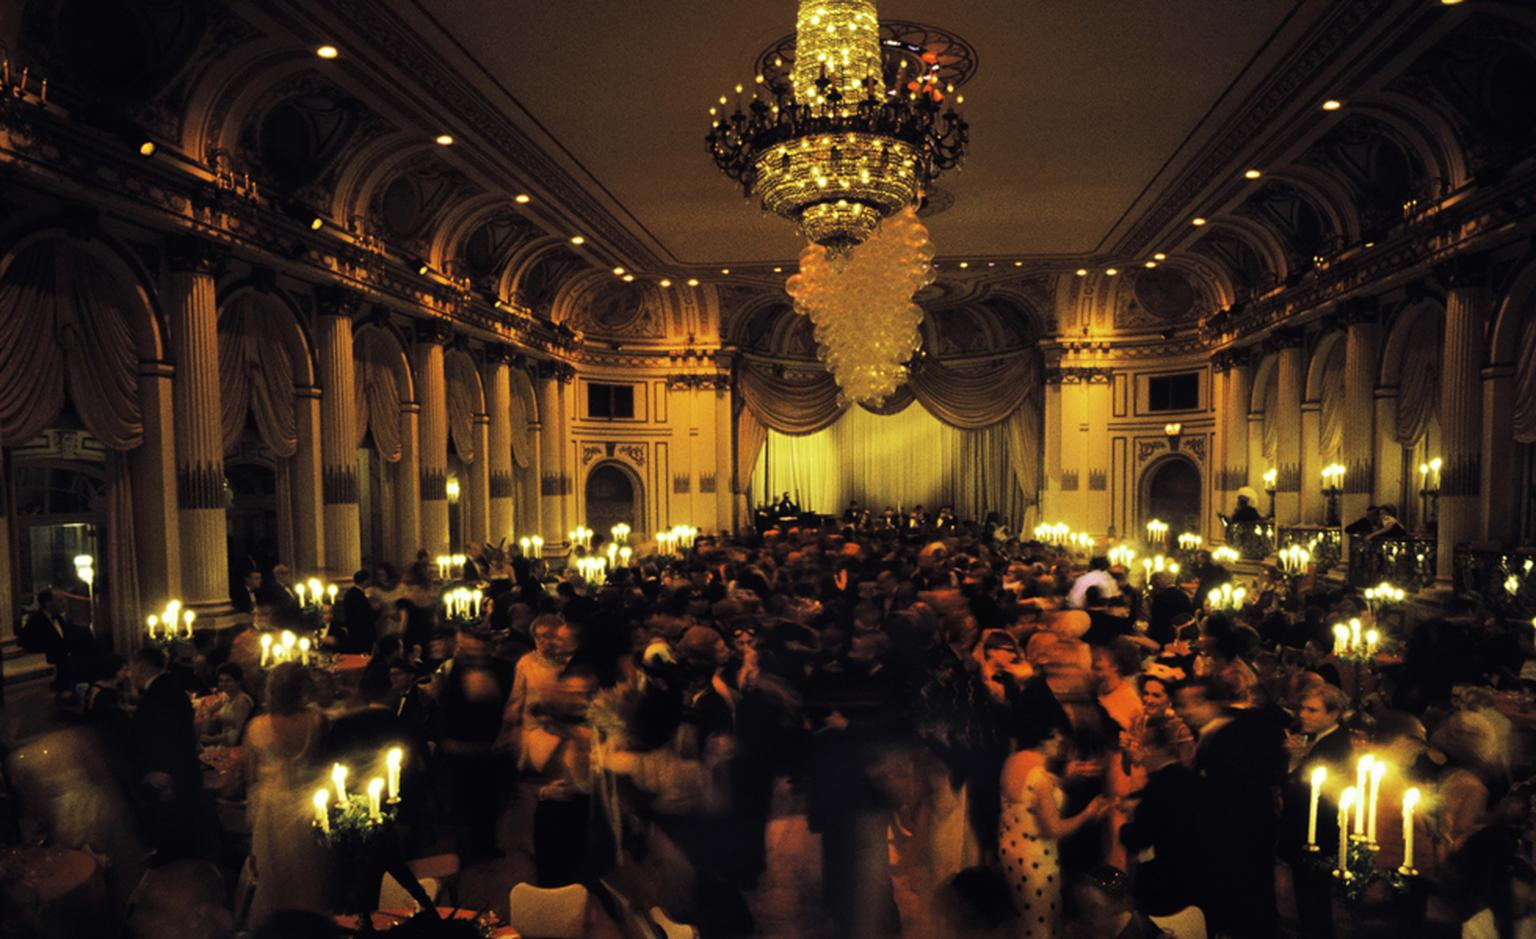 Van Cleef & Arpels, Bals de Légende, Le Bal Black and White: New York 1966, Truman Capotes at The Plaza Hotel.